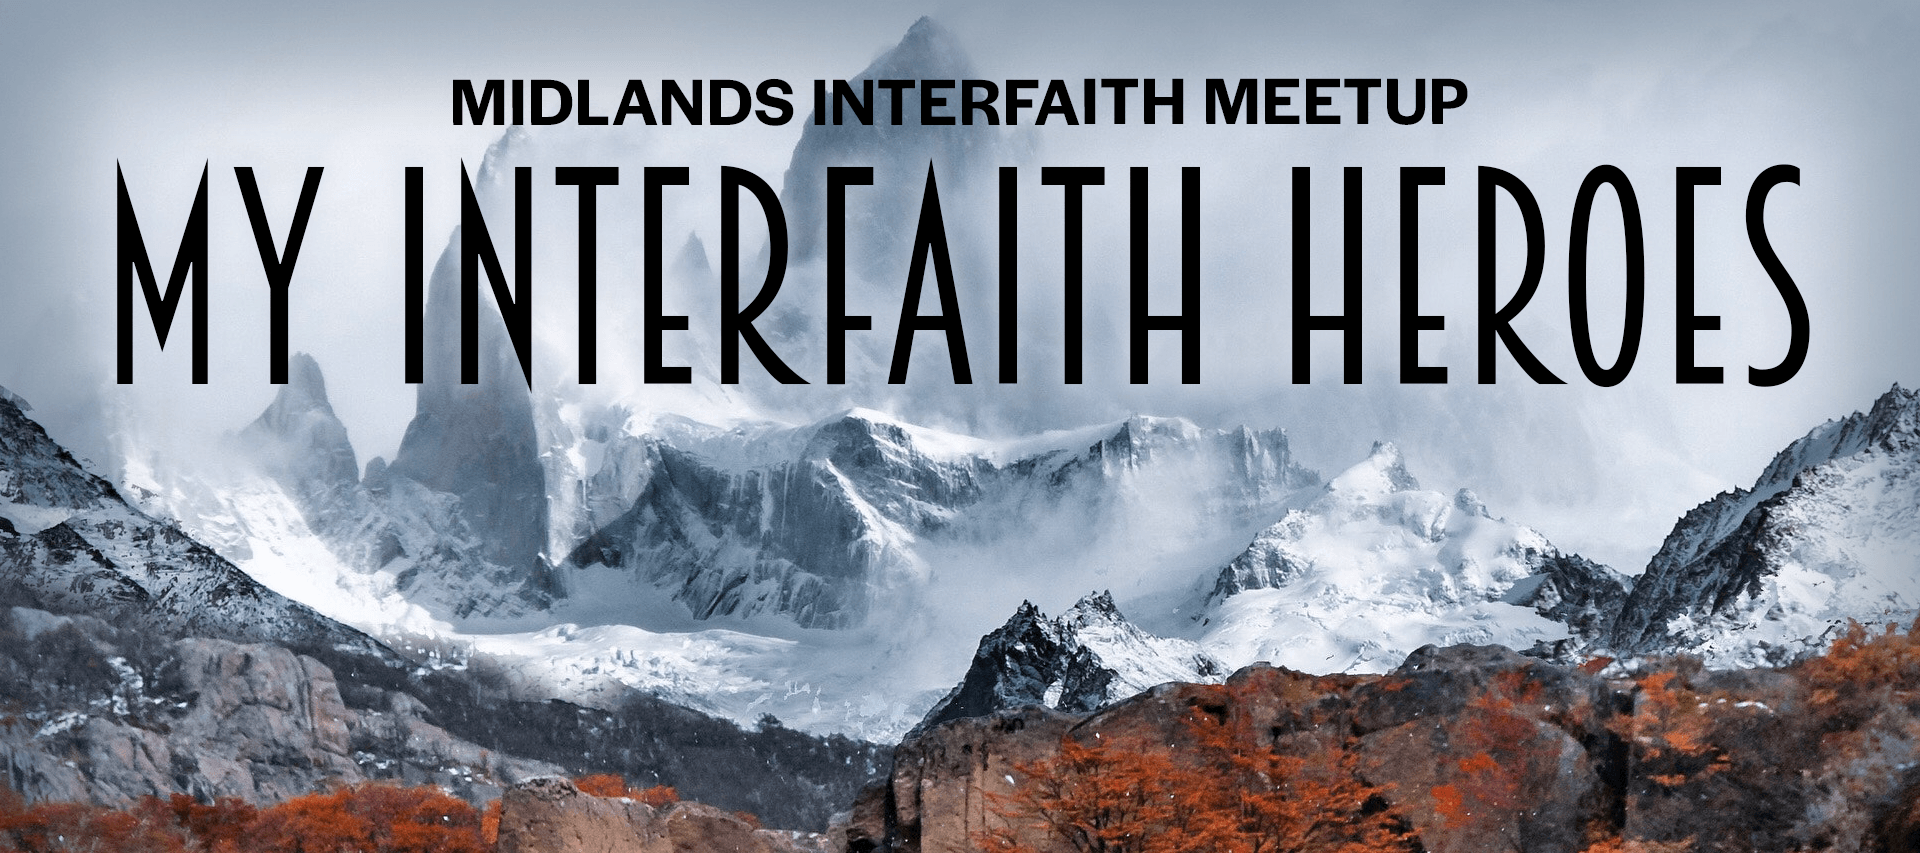 Midlands Interfaith Meetup: My Interfaith Heroes